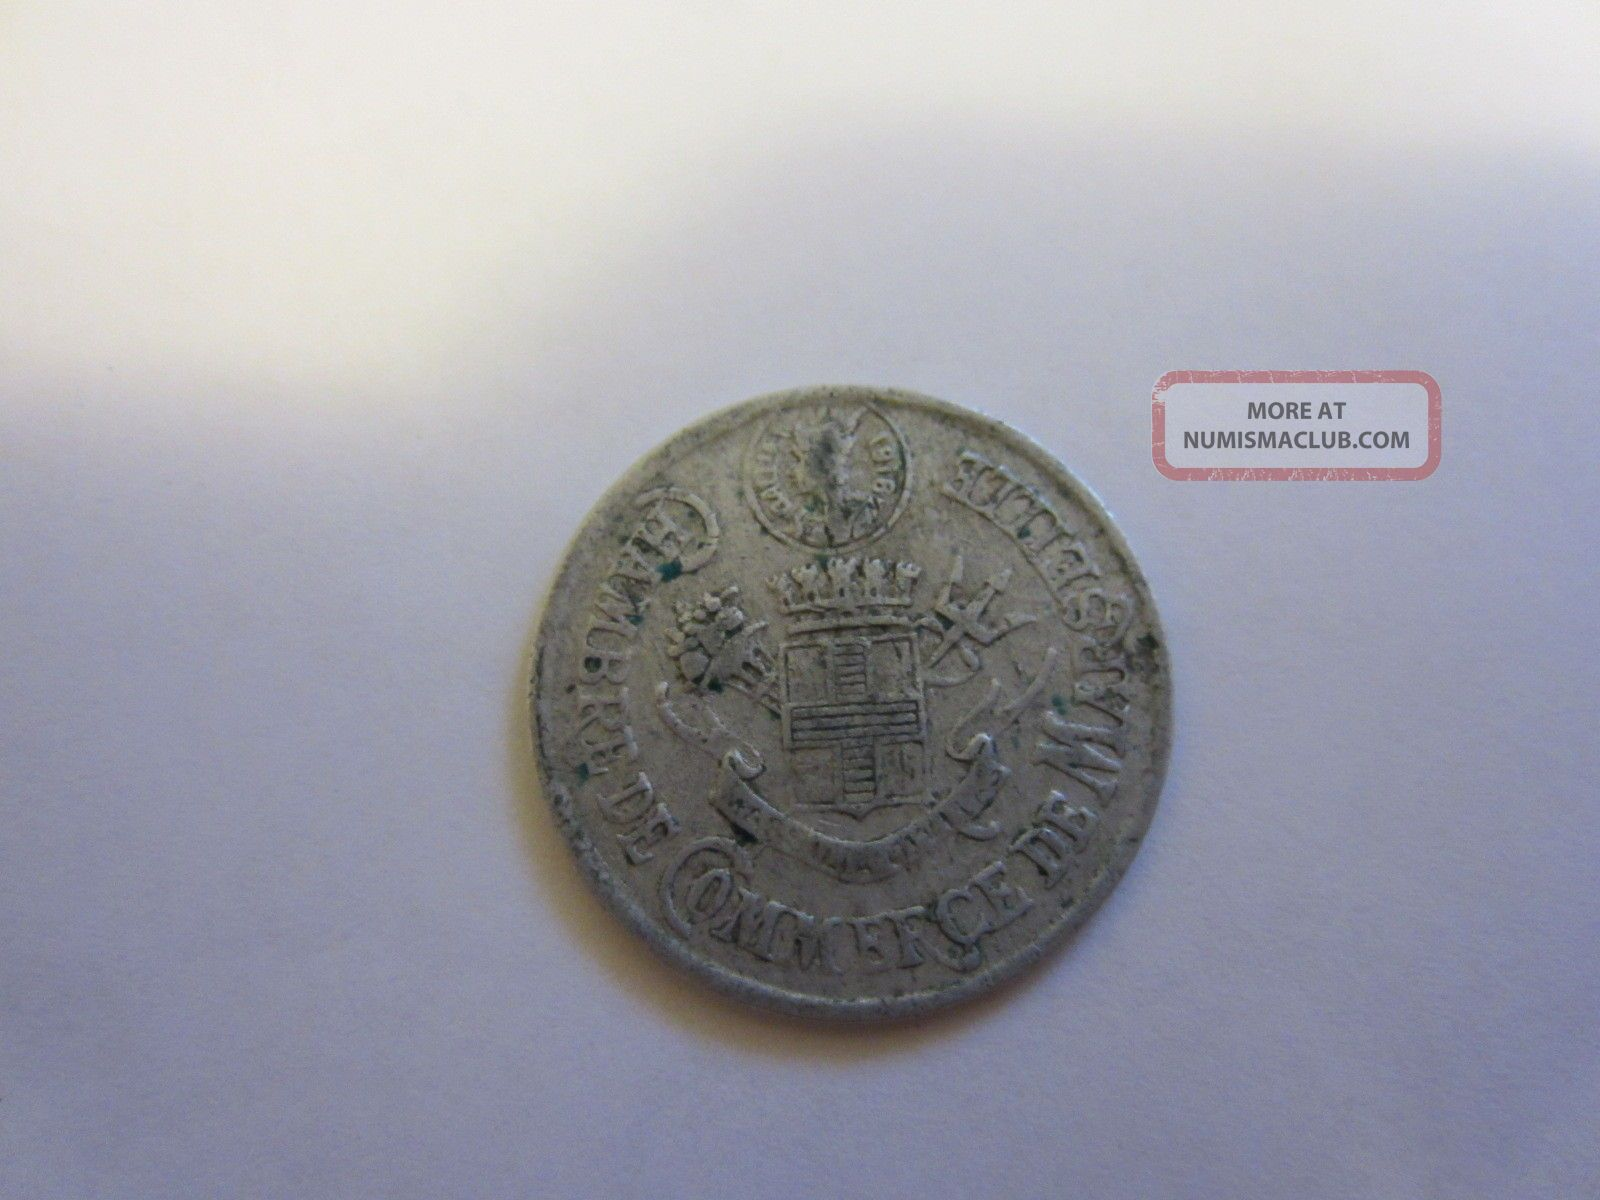 World War One Chamber Of Commerce Marseille France 1916 10 Cent Coin Europe photo